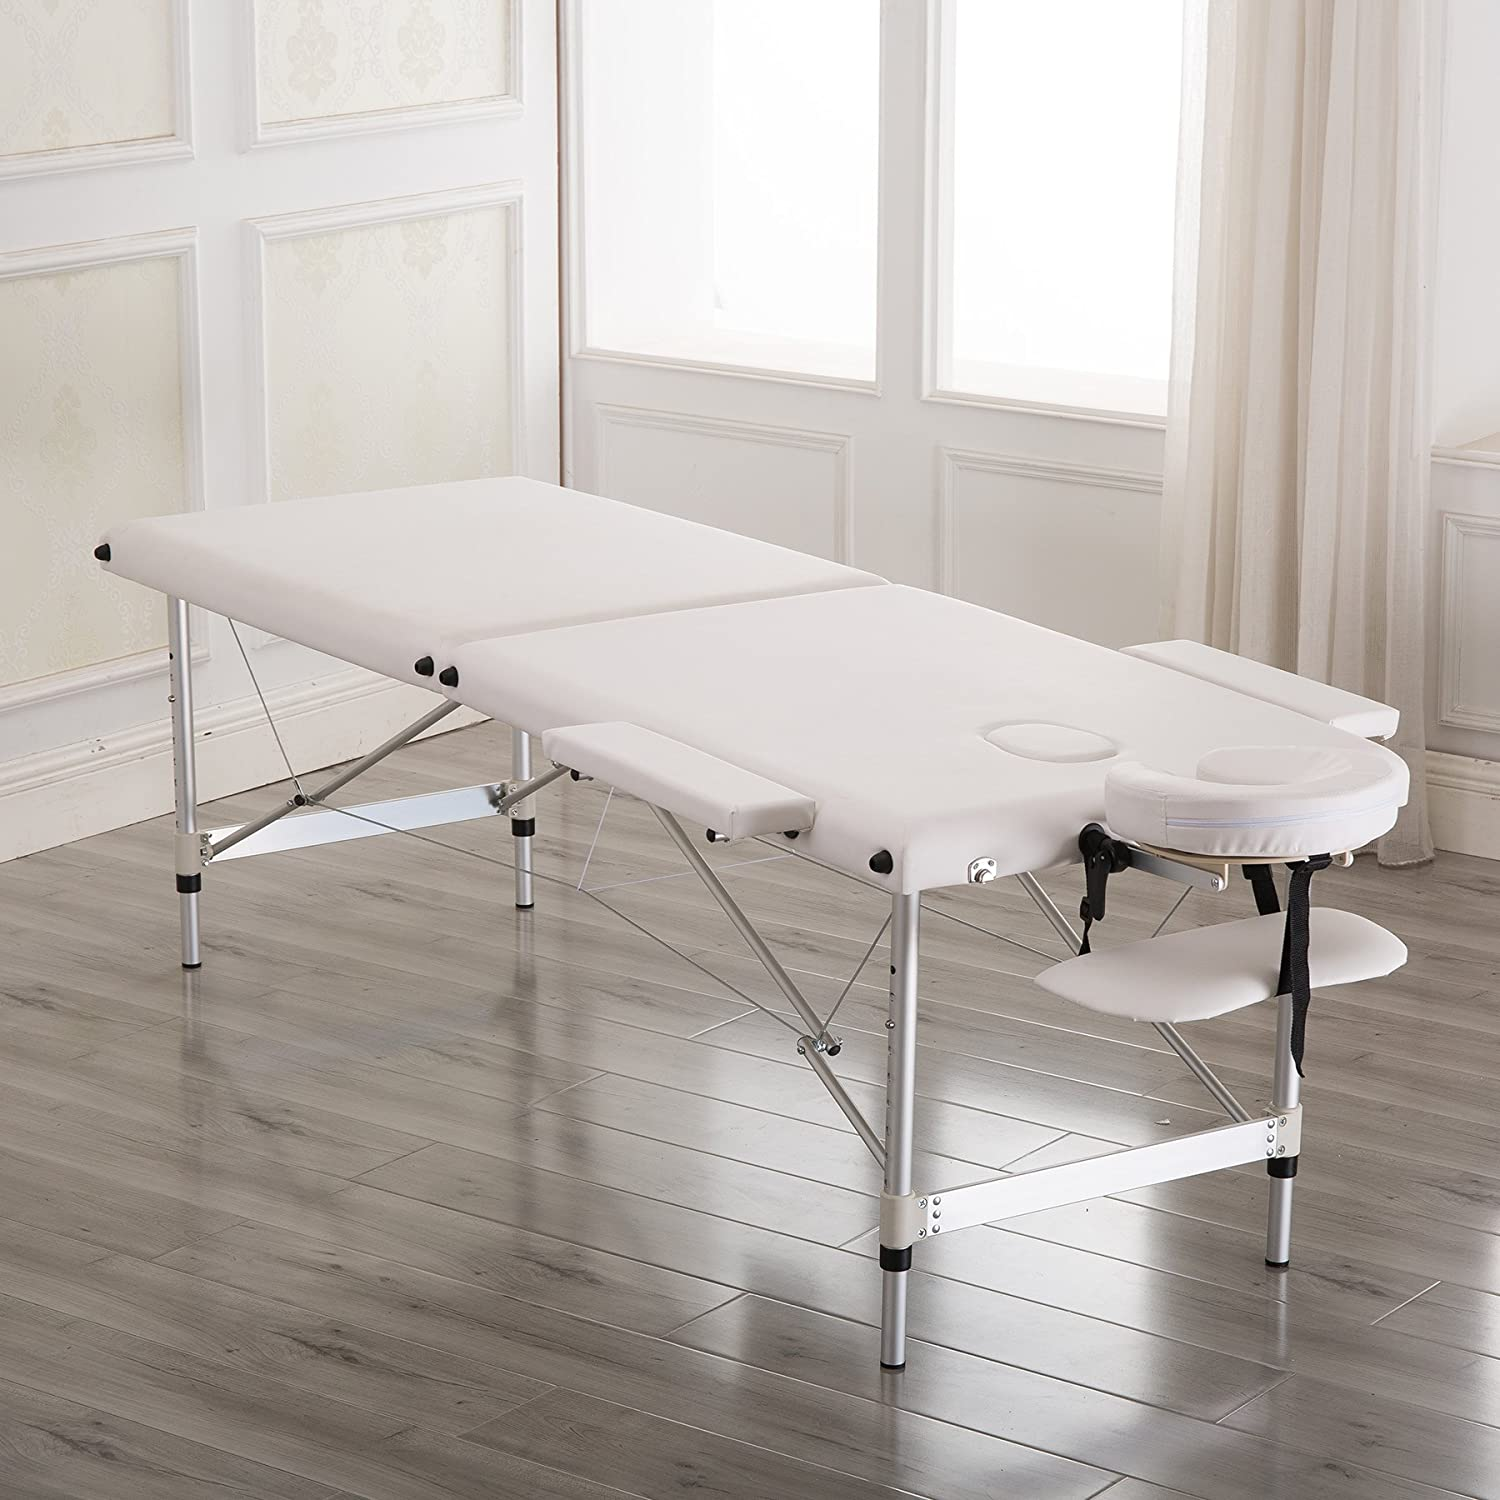 Massage Table Spa Bed 76 Aluminum Height Adjustable 2 Fold Salon Bed with Carrying Bag,White